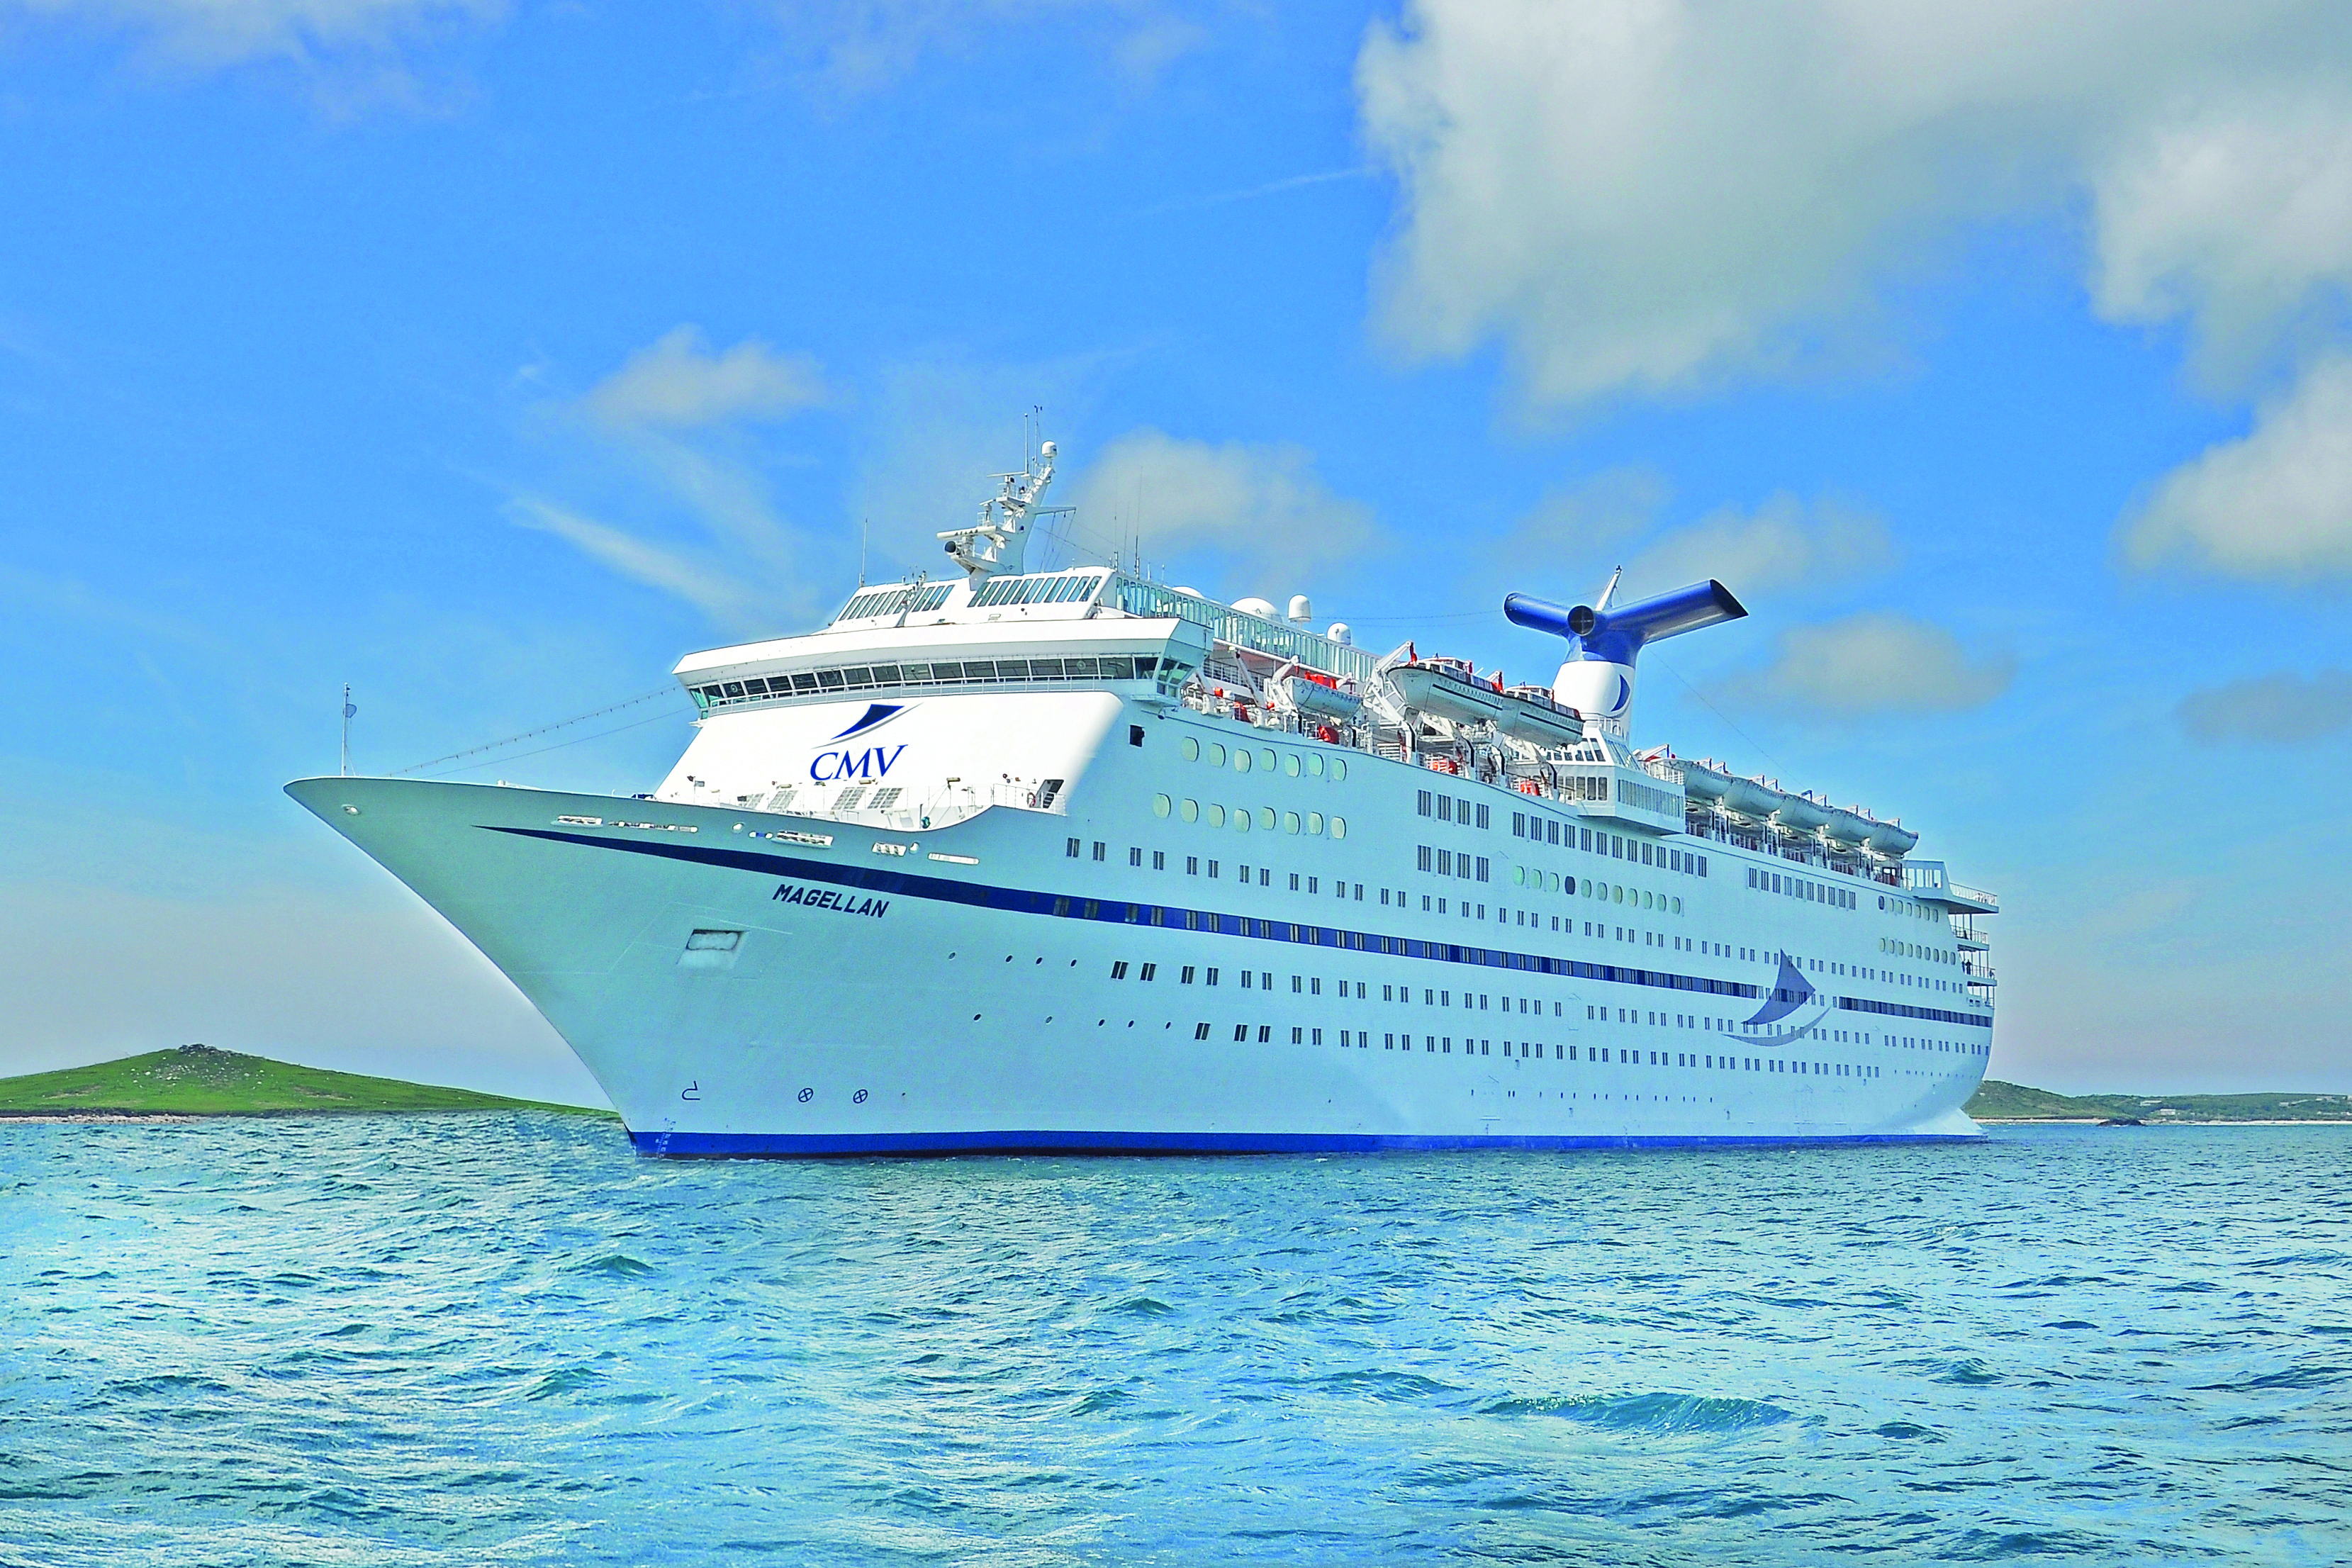 The Courier cruise will be on board the majestic Magellan.